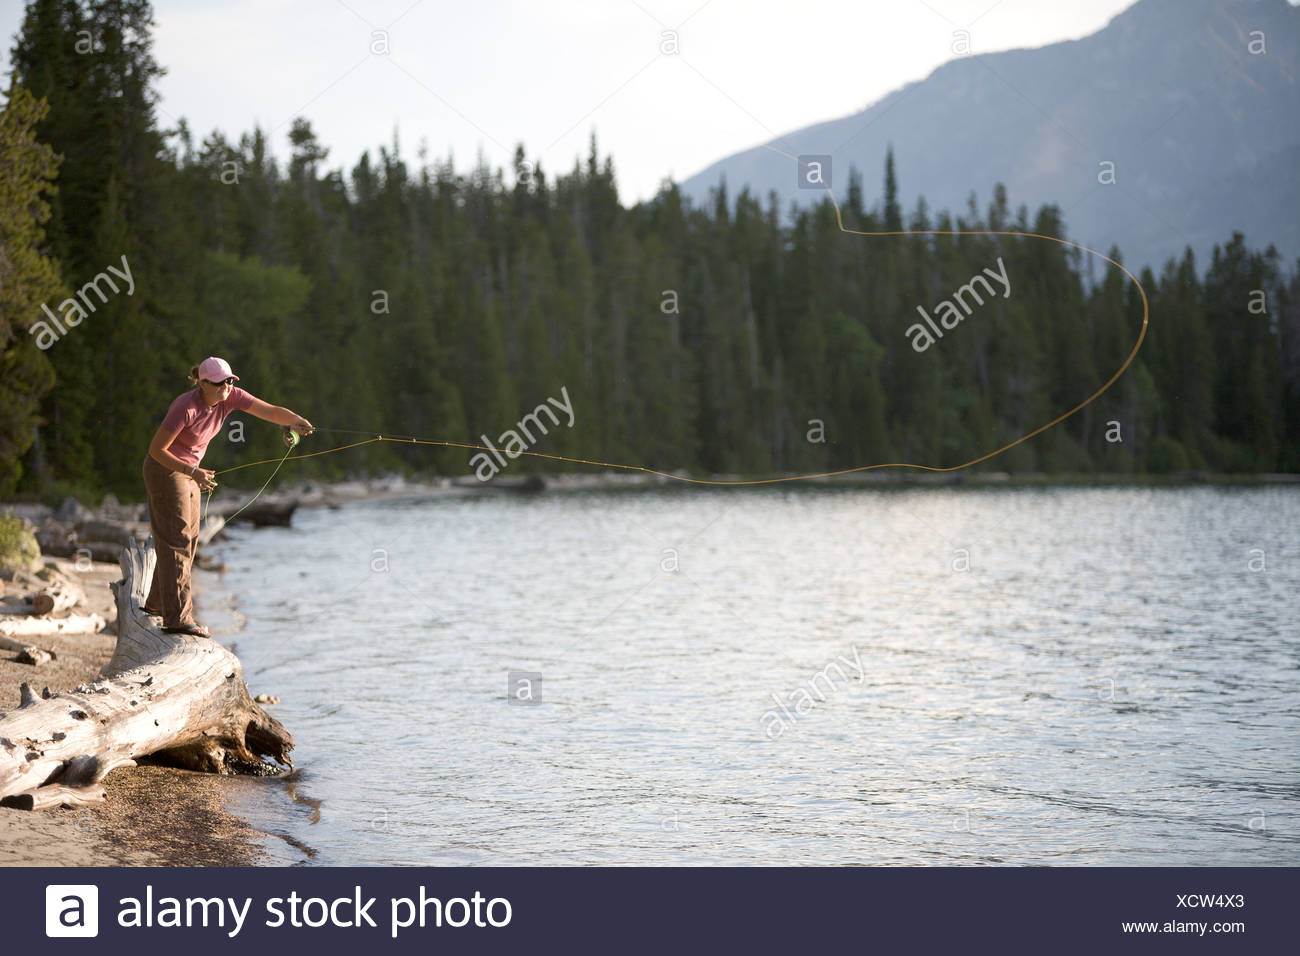 A woman casts her flyline from the shore of a lake. - Stock Image